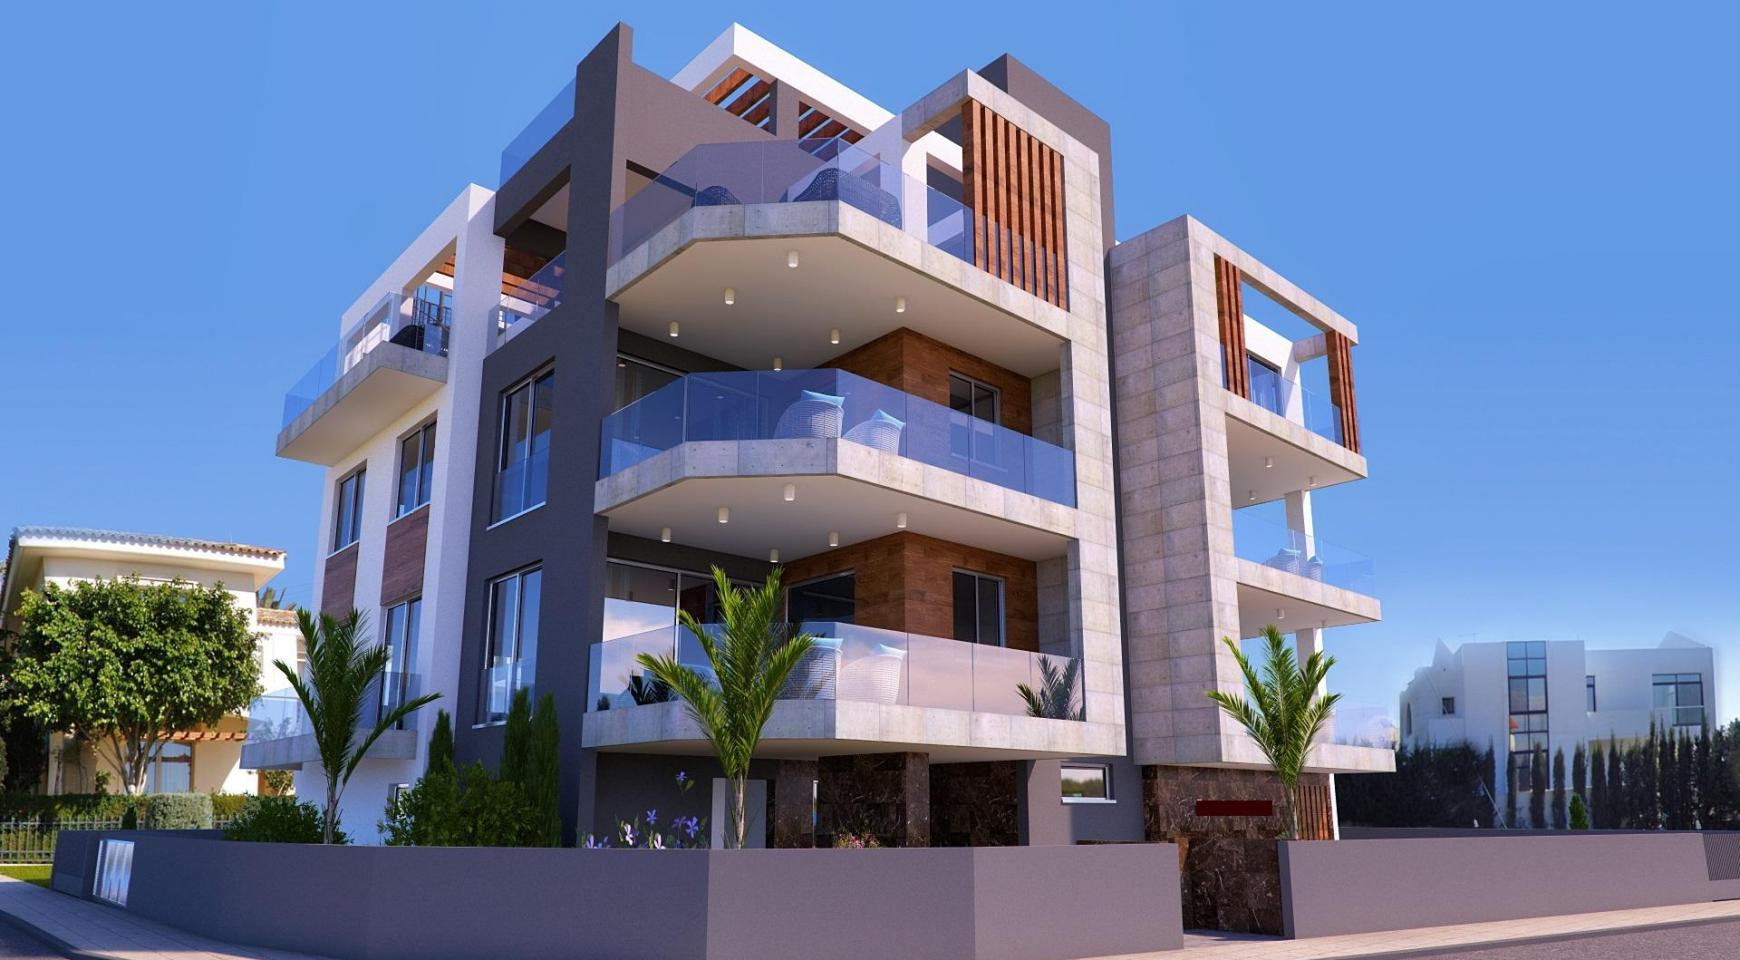 3 Bedroom Apartment in a Contemporary Building in Potamos Germasogeia - 1